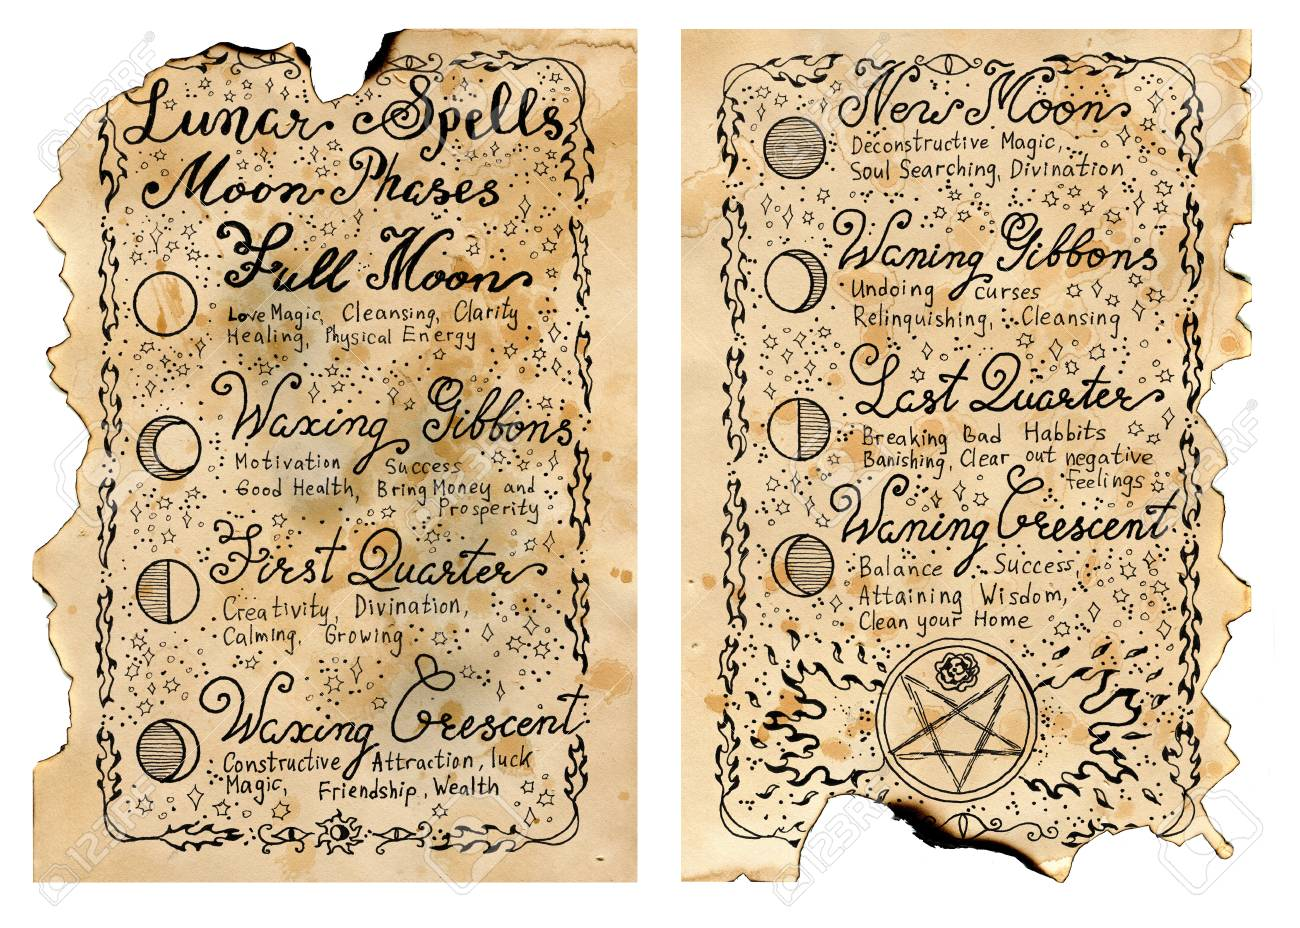 worn pages of old